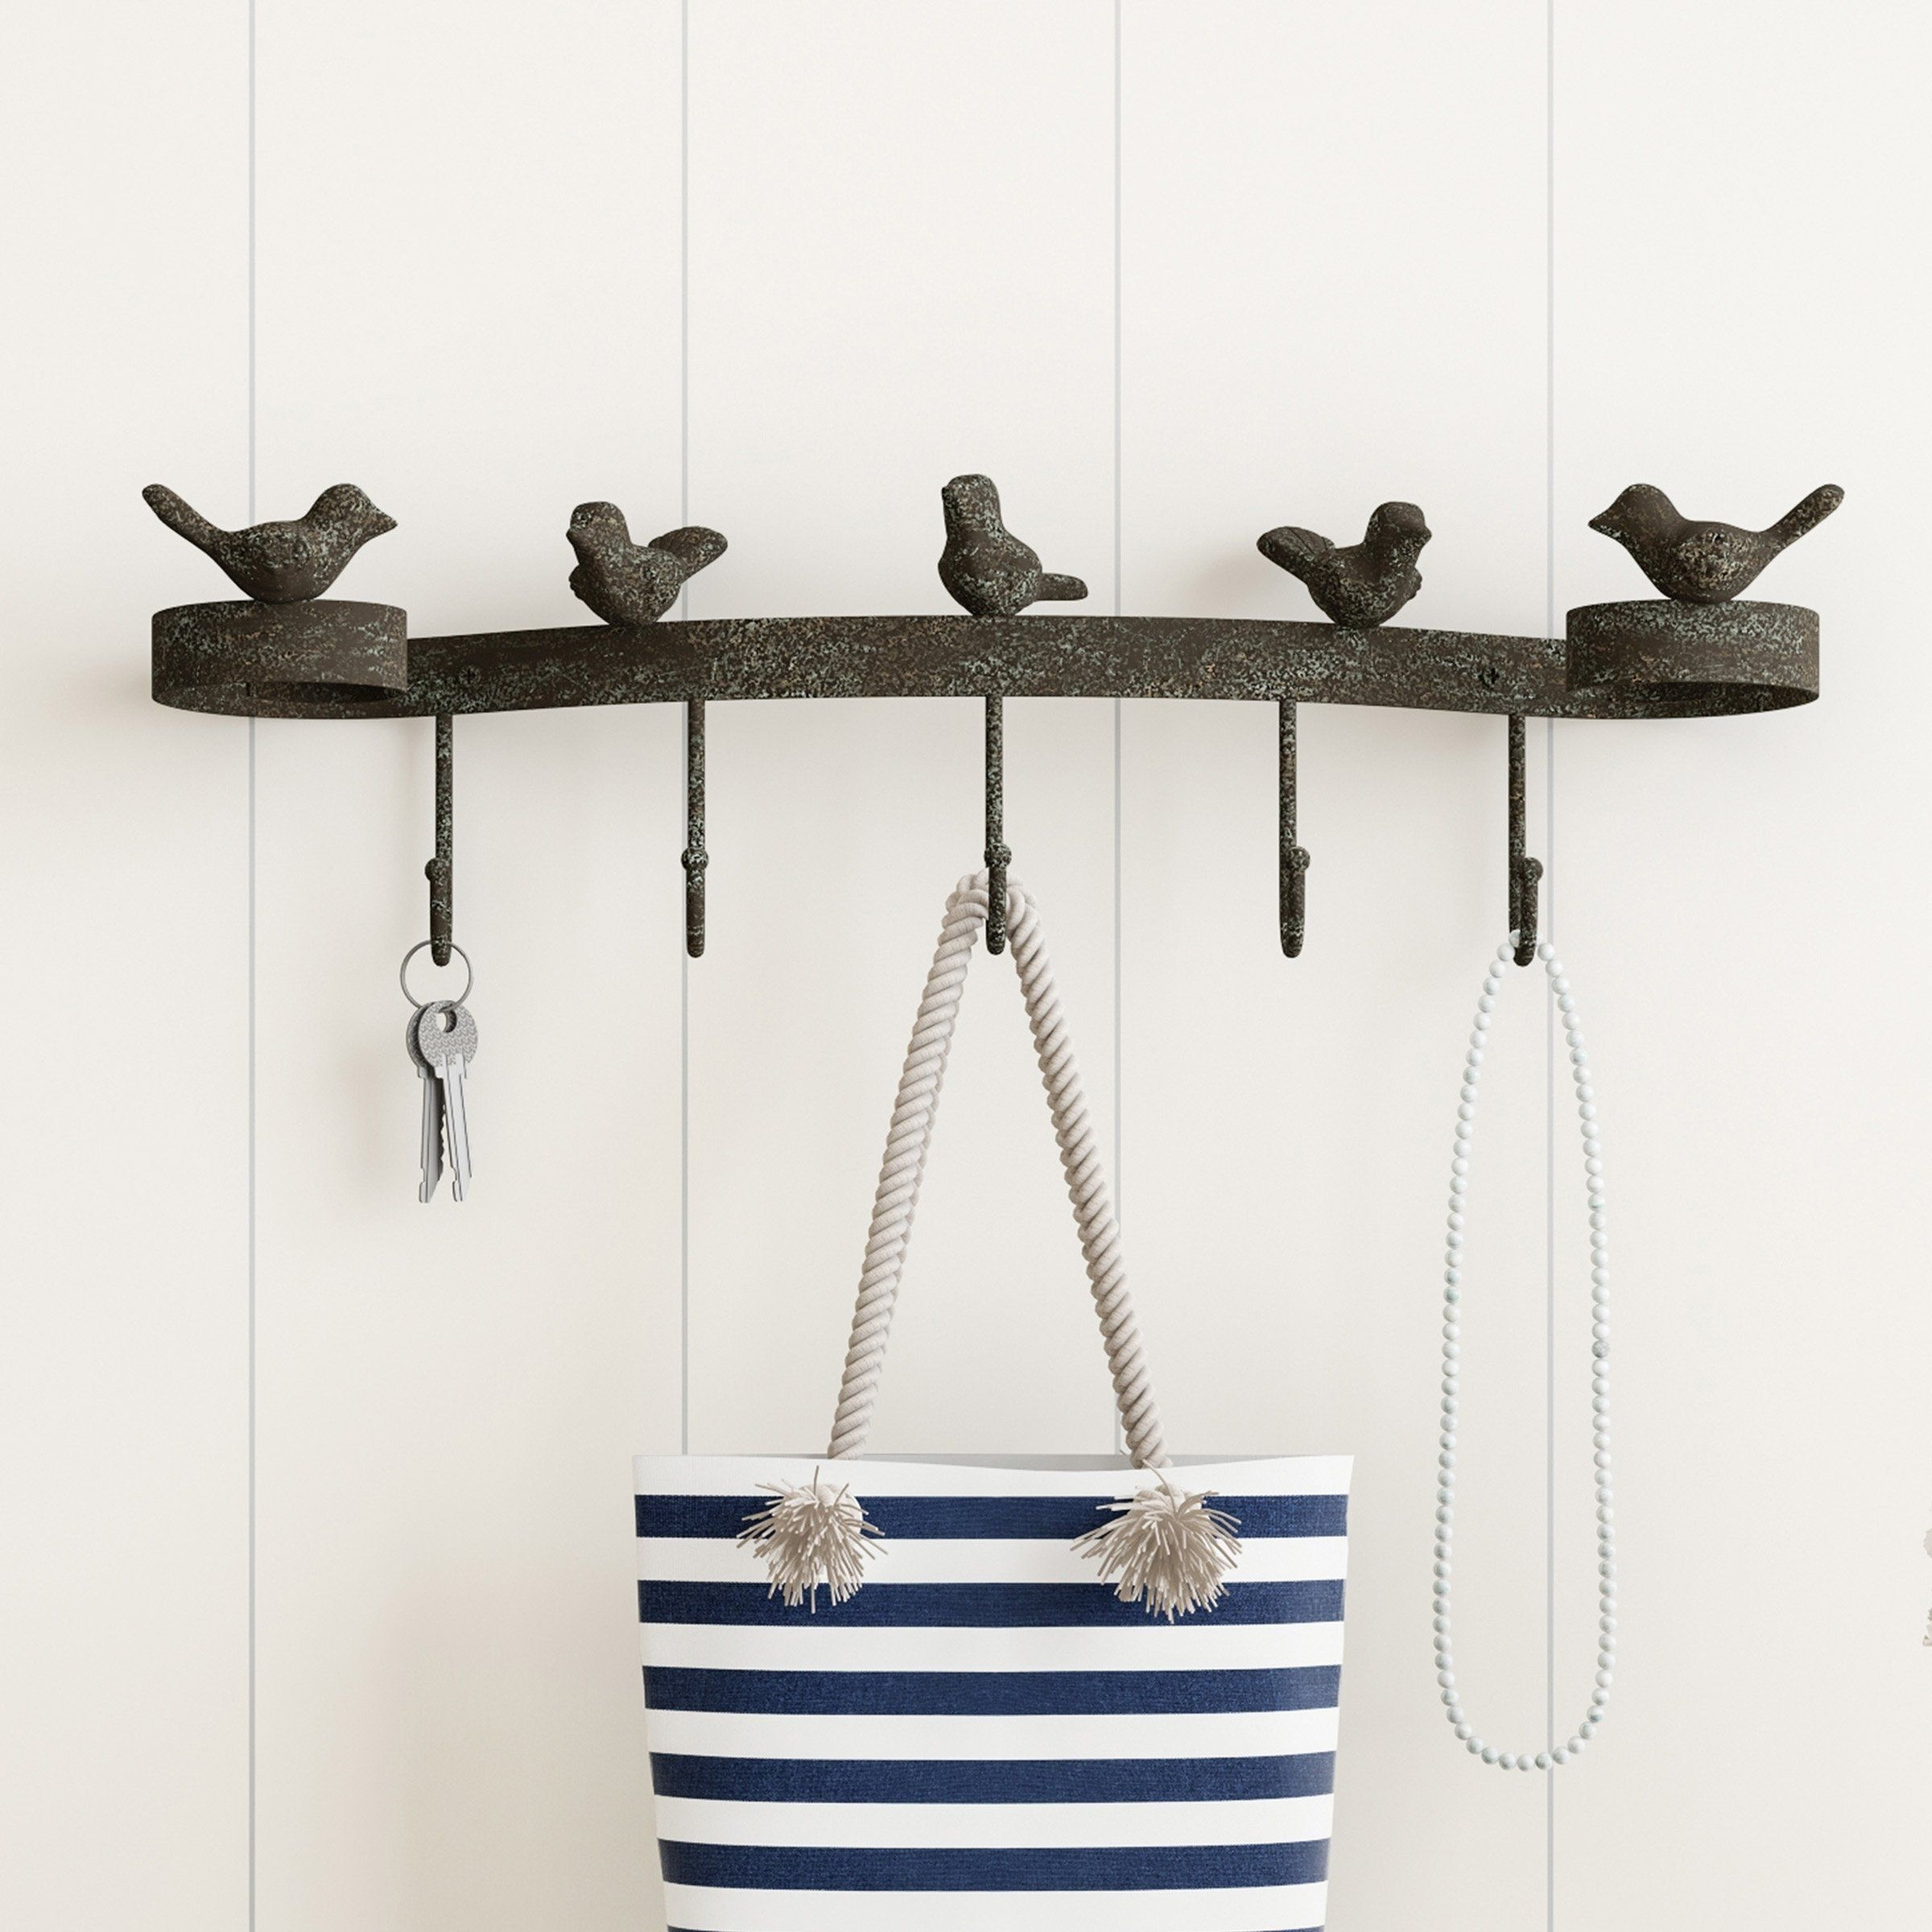 Decorative Birds on Ribbon Hook-Cast Iron Shabby Chic Rustic Wall Mount Hooks by Lavish Home, Brown images